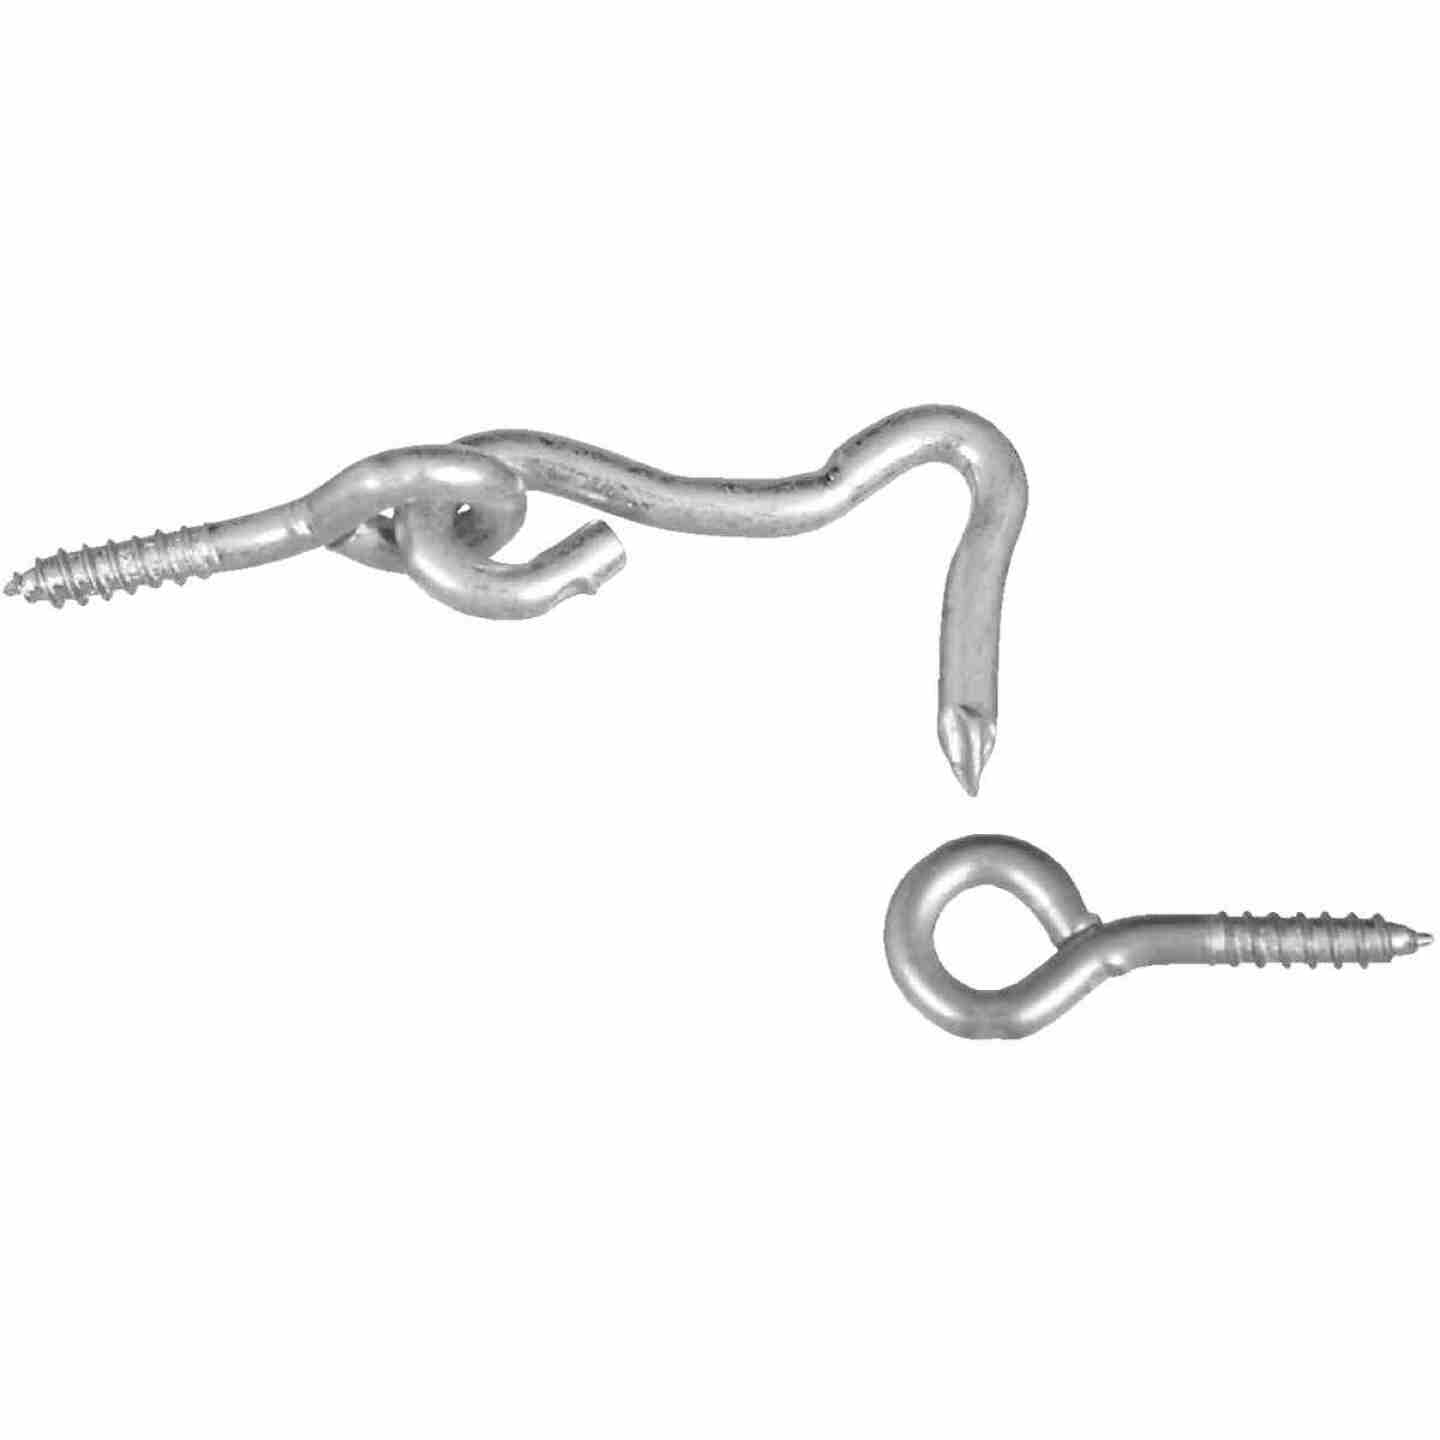 National1 In. Steel Hook & Eye Bolt (2 Ct.) Image 1